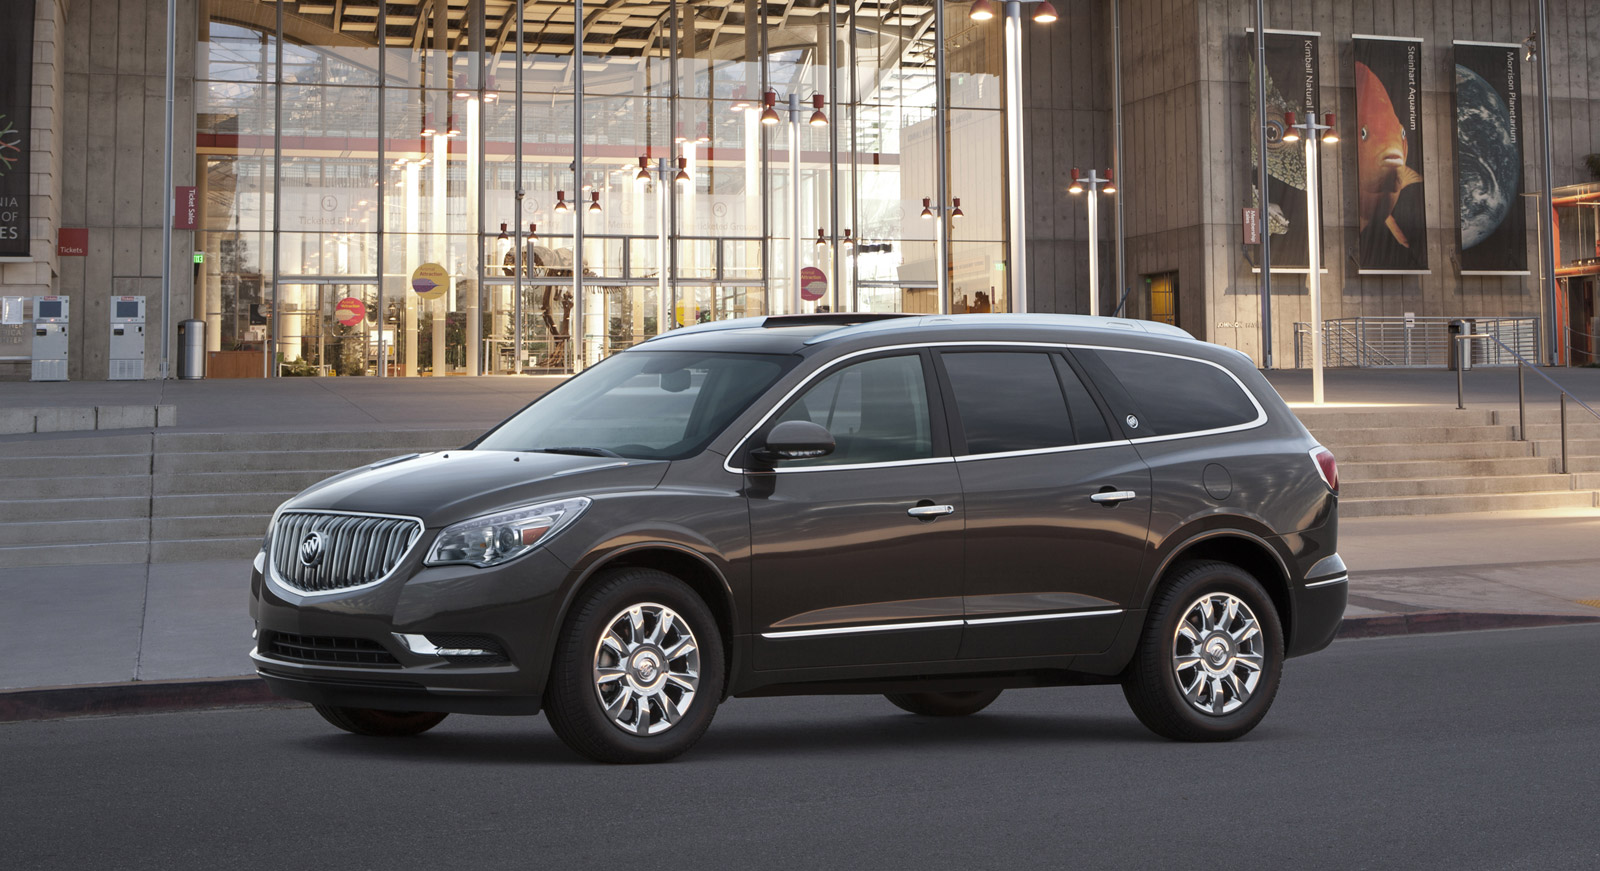 specs enclave auto news full buick